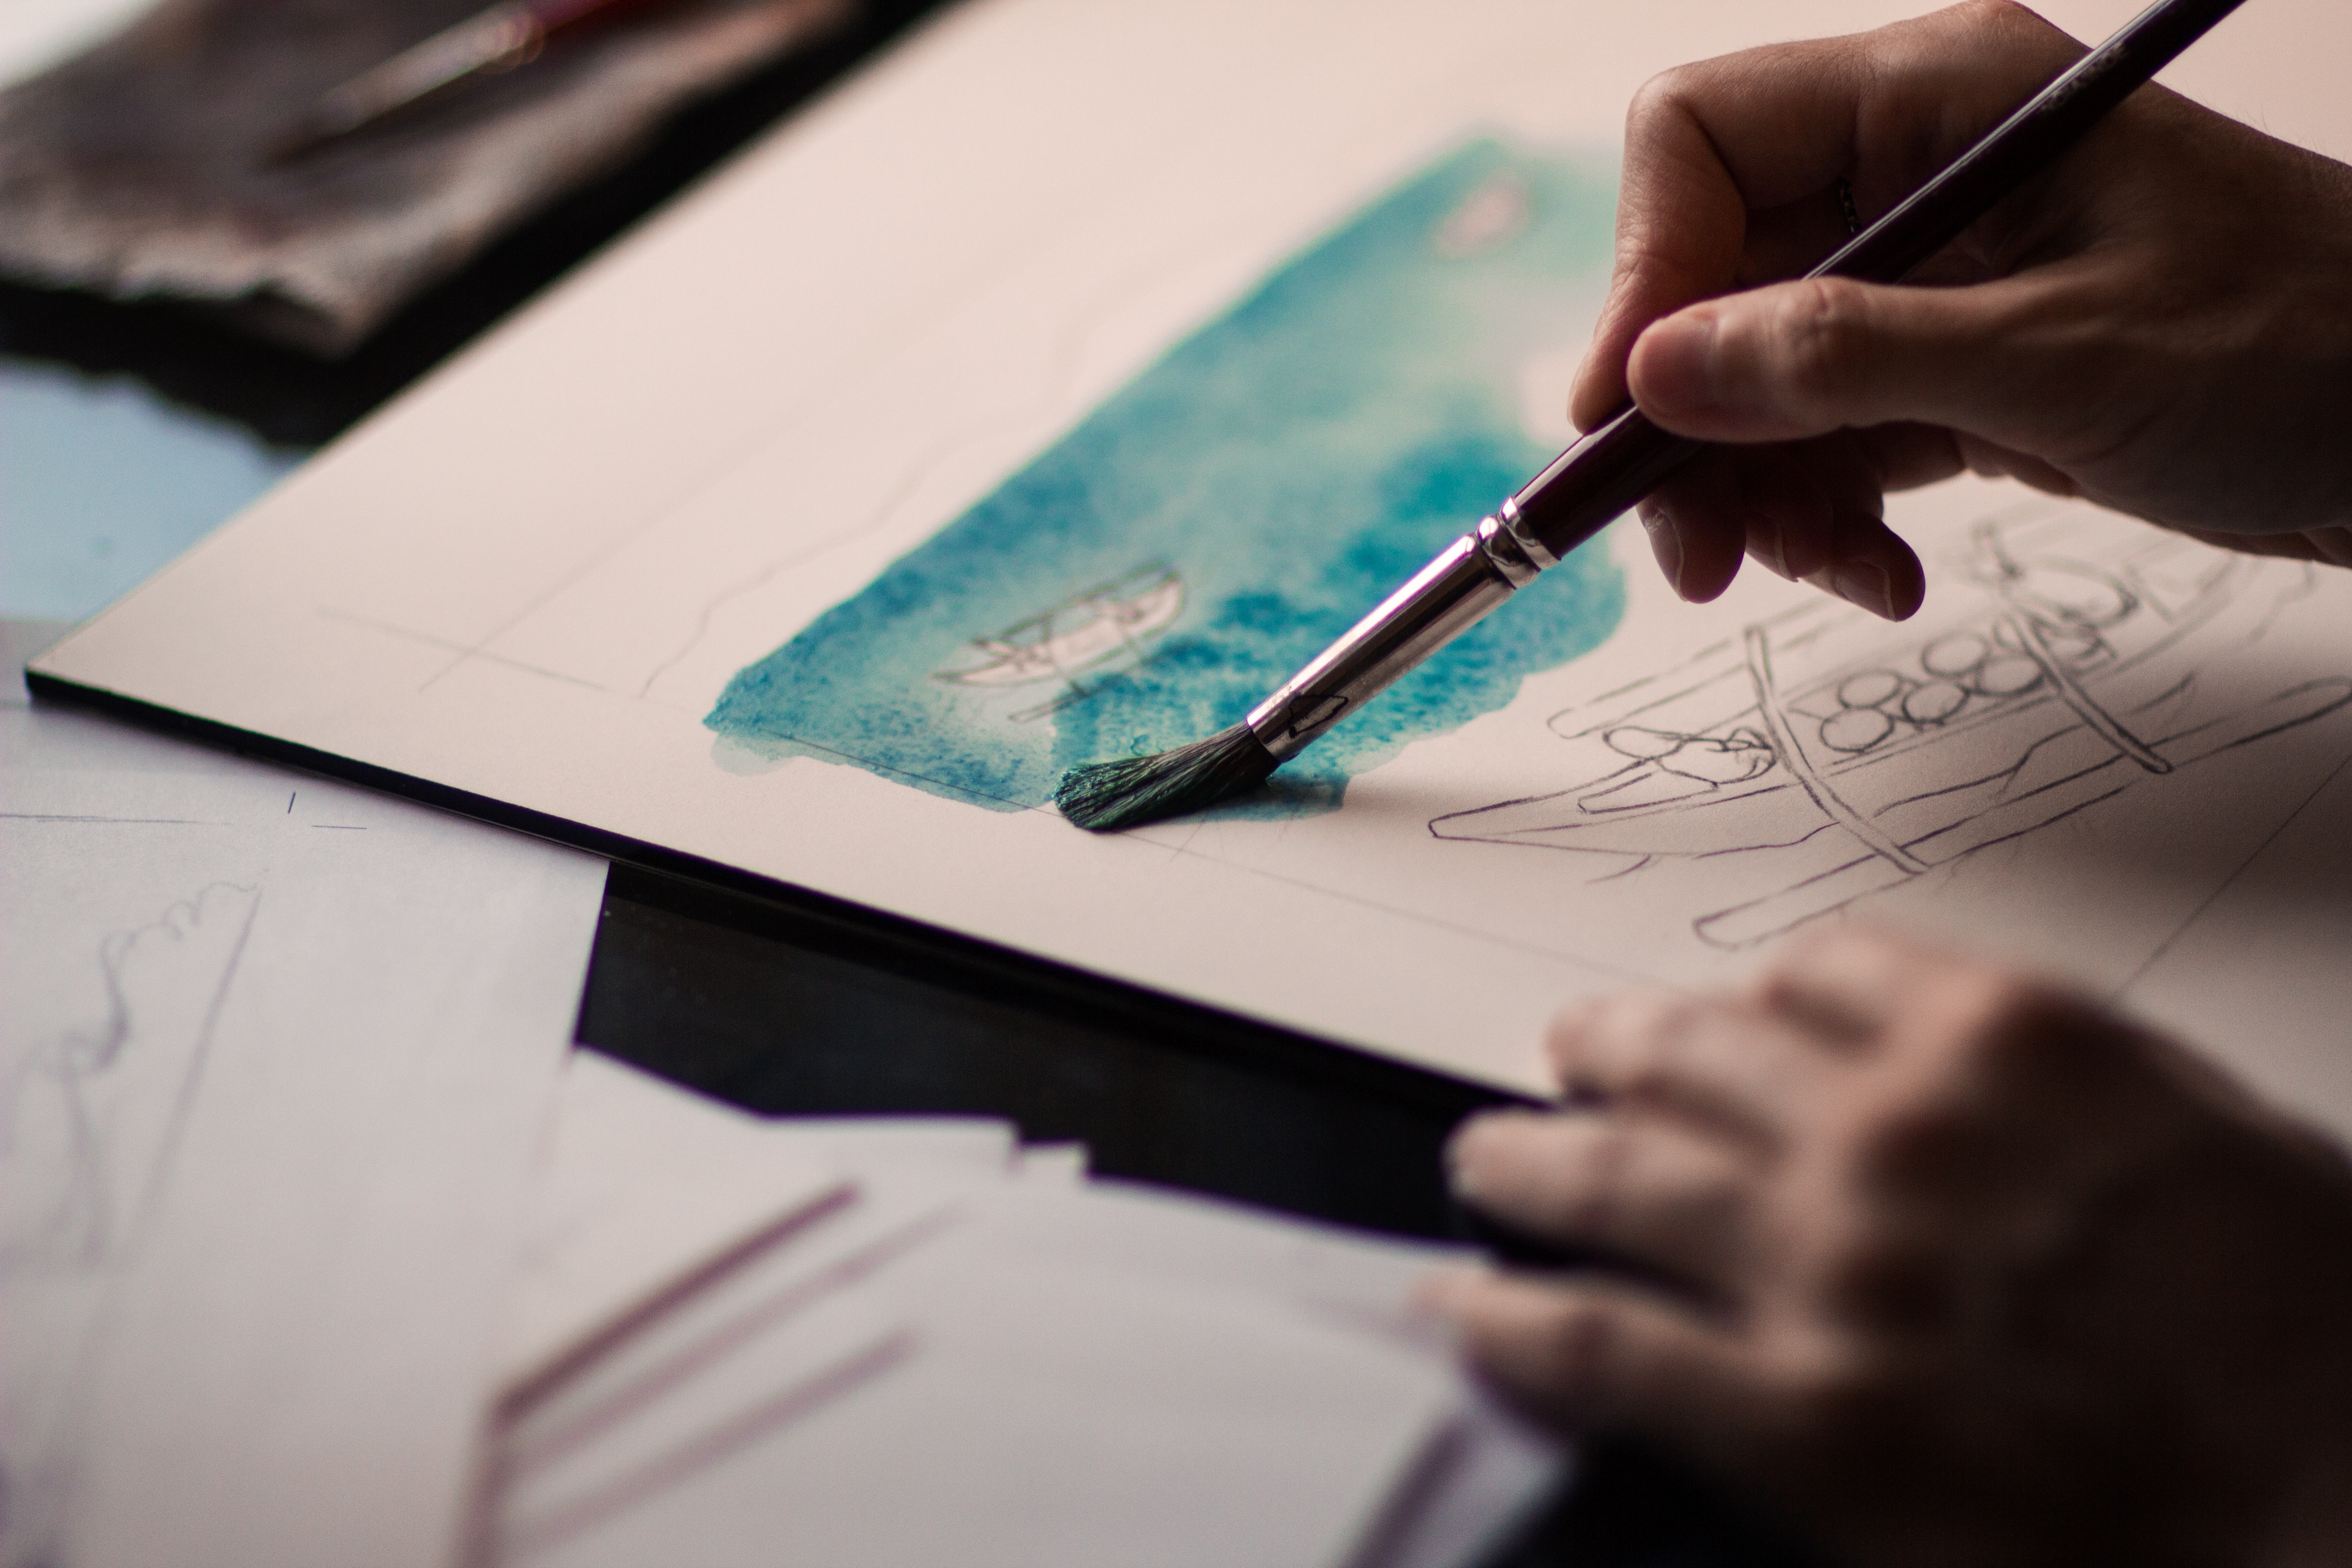 Person painting on white paper with blue watercolor paint